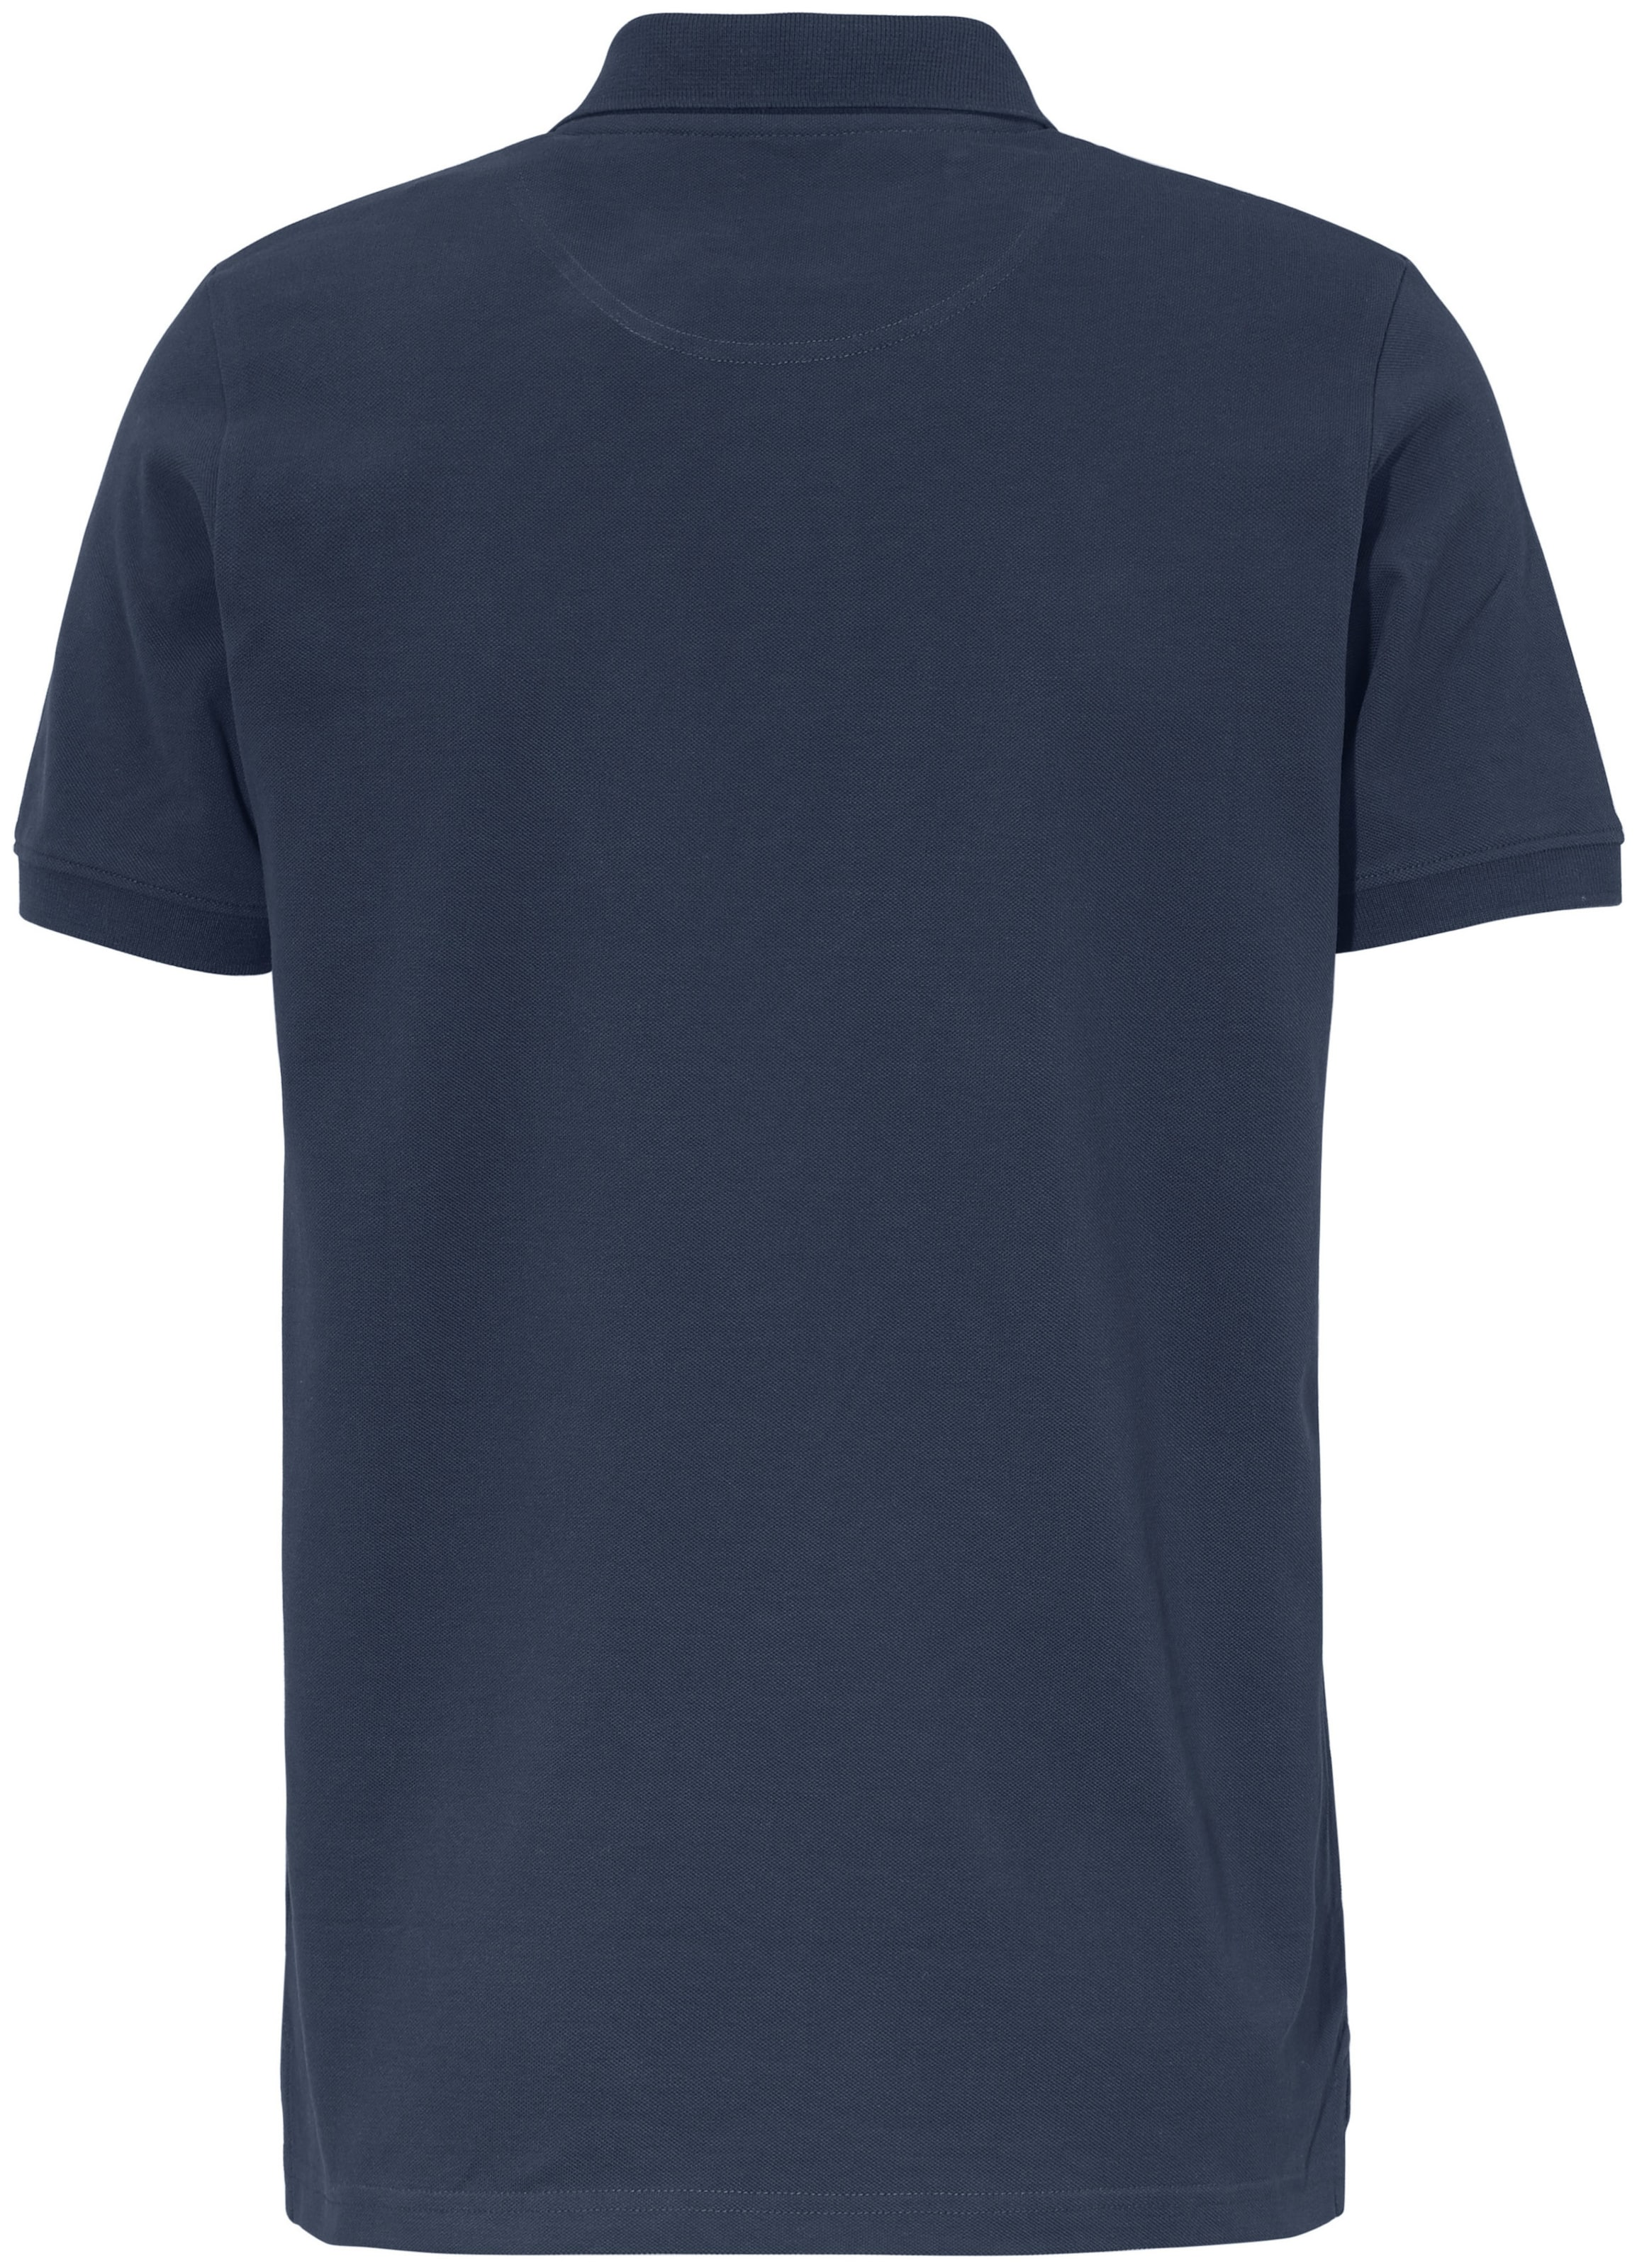 Didriksons1913 Didriksons1913 'willy' Shirt Navy In Shirt TlKFJ1c